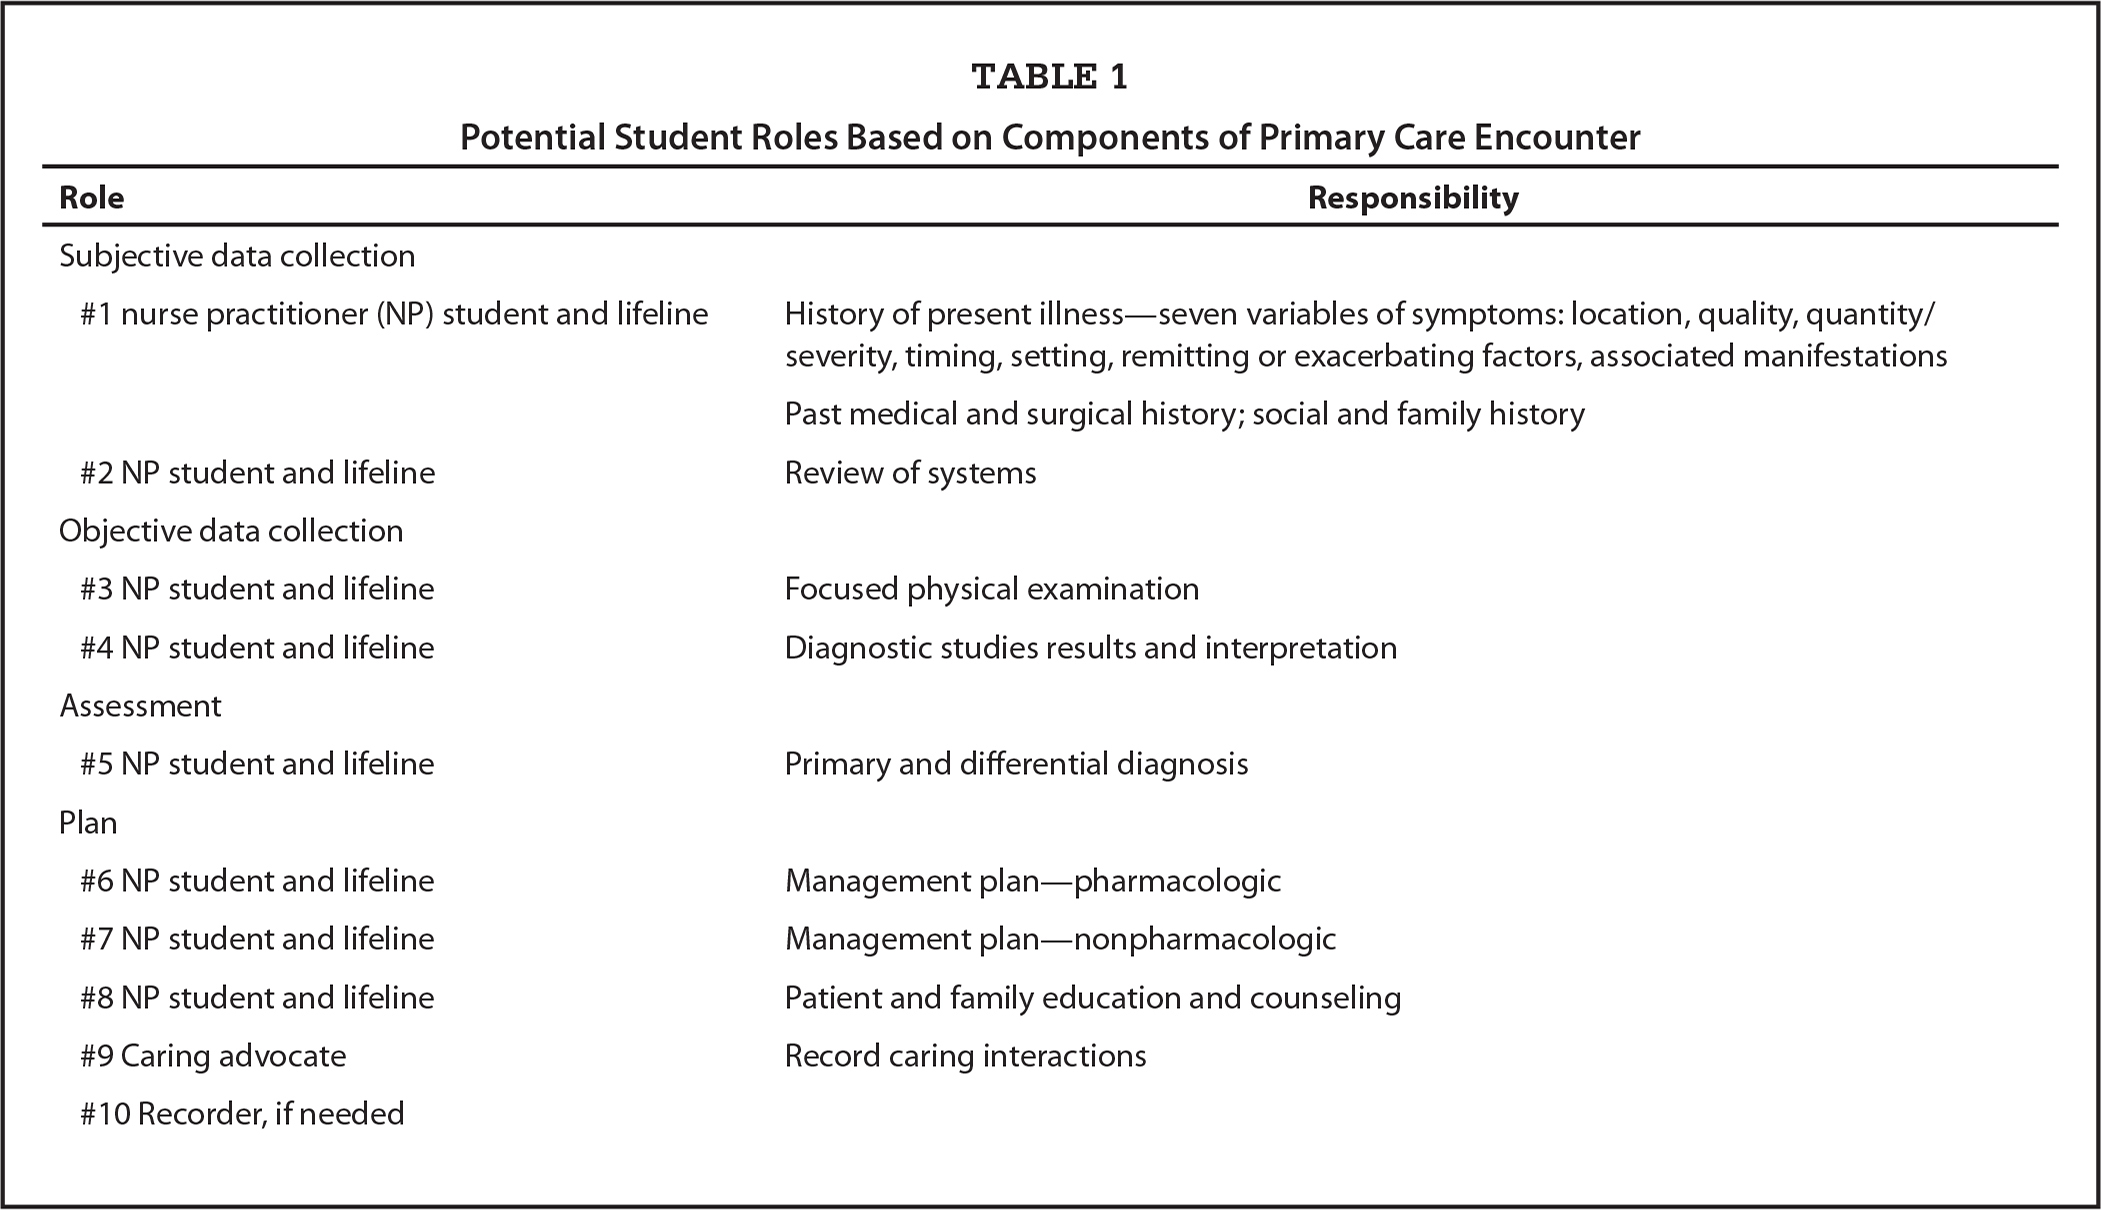 Potential Student Roles Based on Components of Primary Care Encounter